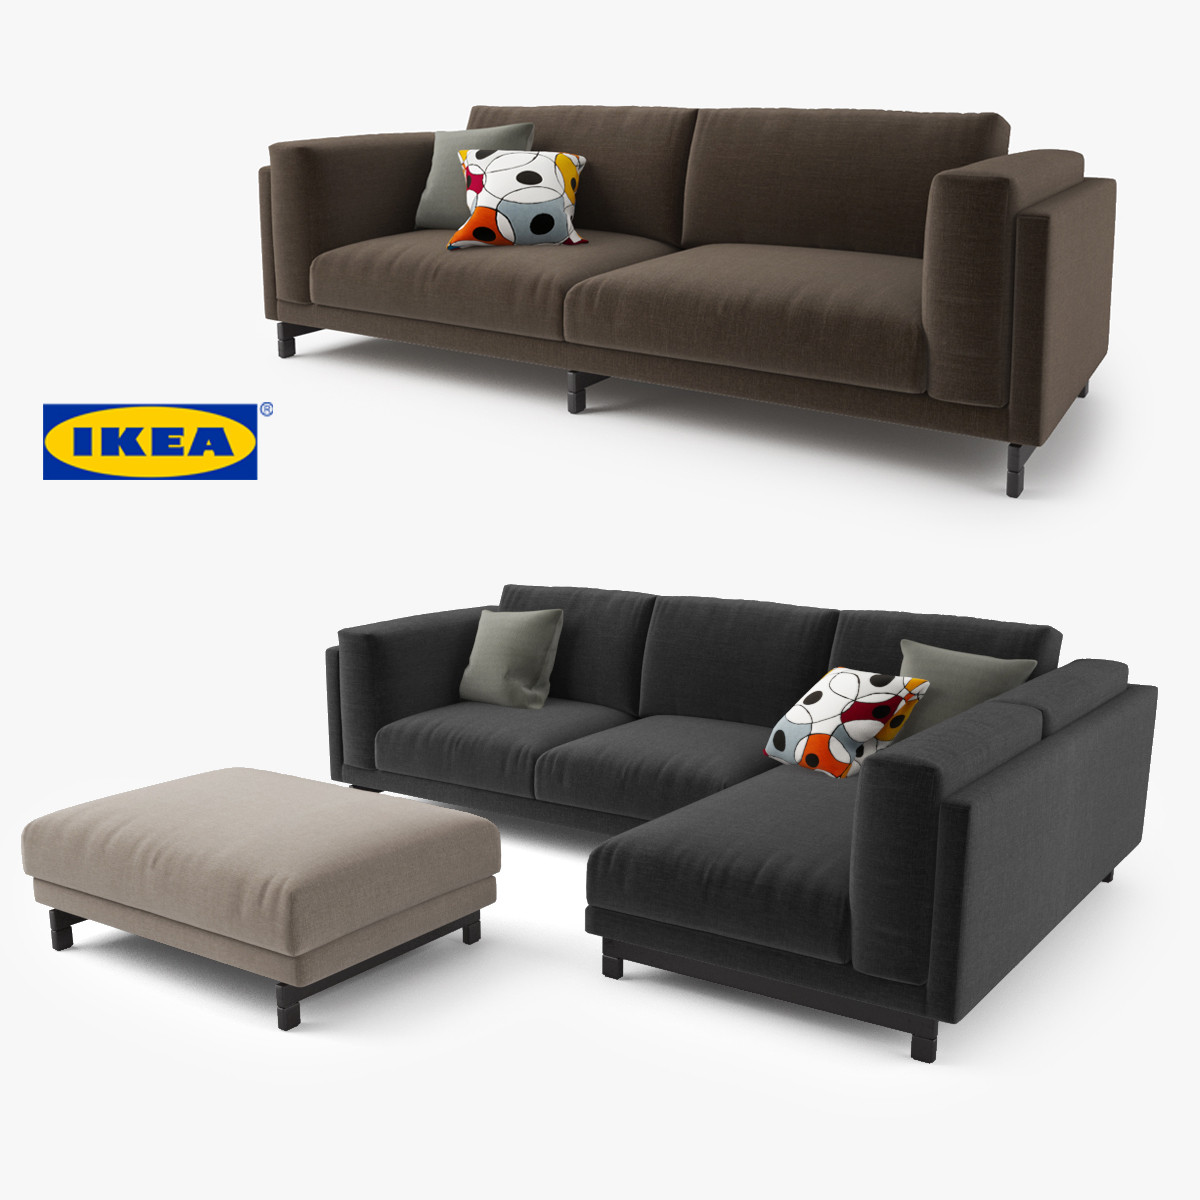 Ikea Sofa Nockeby Test 3d Model Ikea Nockeby Series Sofa